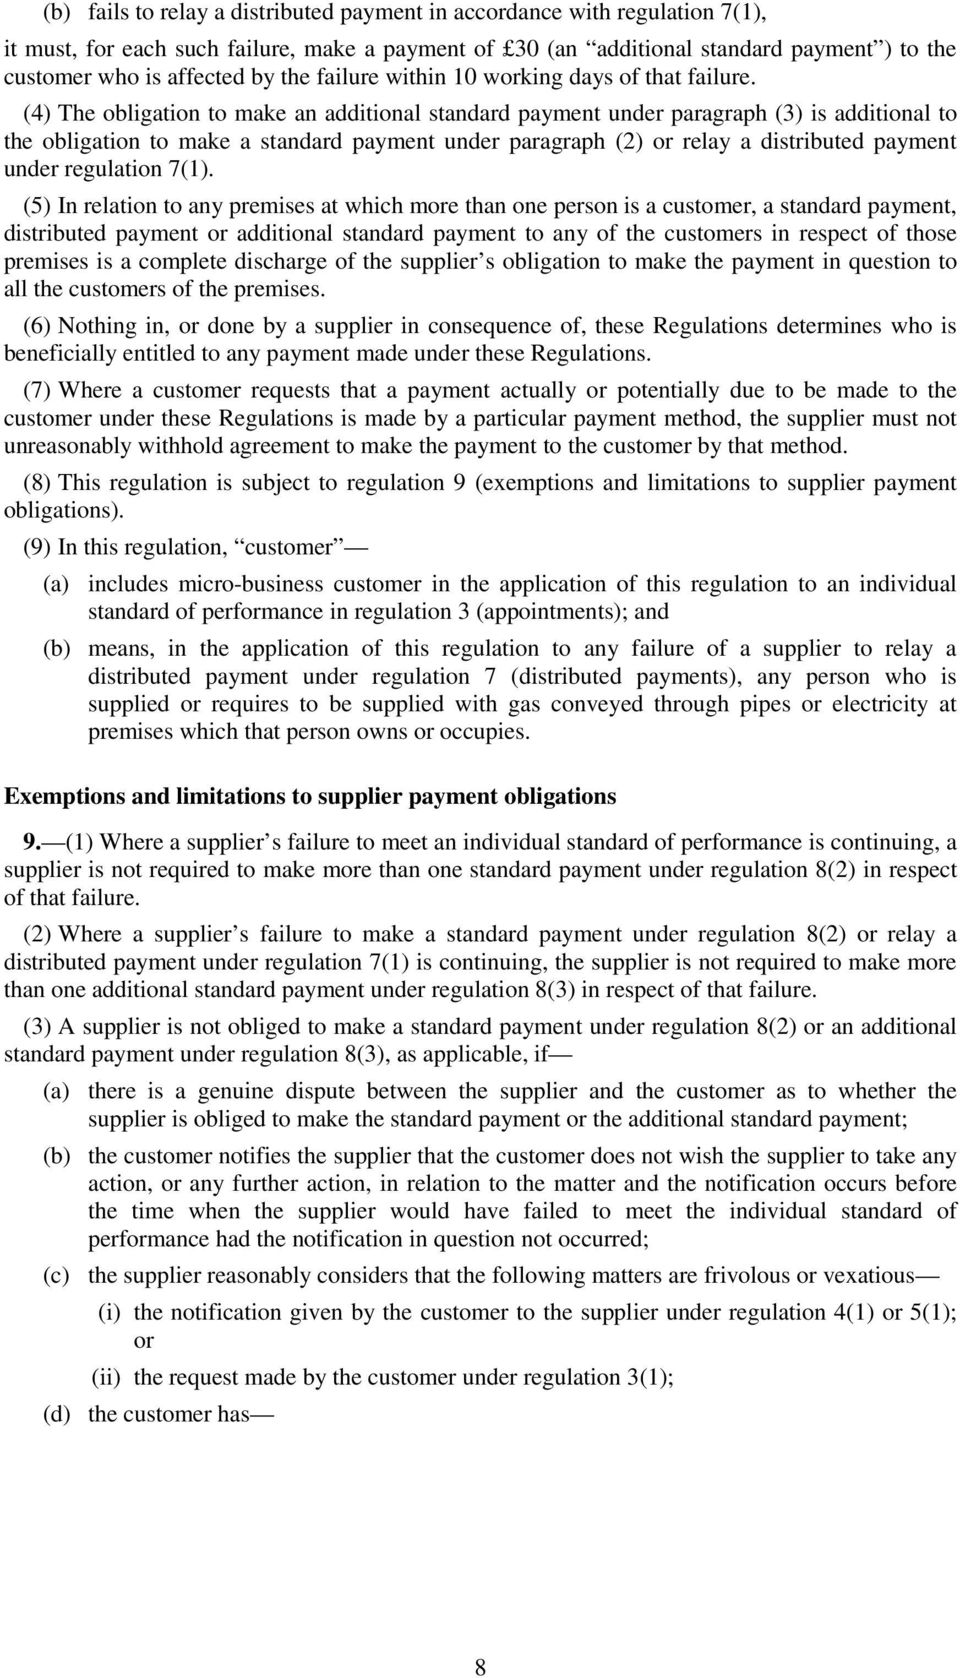 (4) The obligation to make an additional standard payment under paragraph (3) is additional to the obligation to make a standard payment under paragraph (2) or relay a distributed payment under